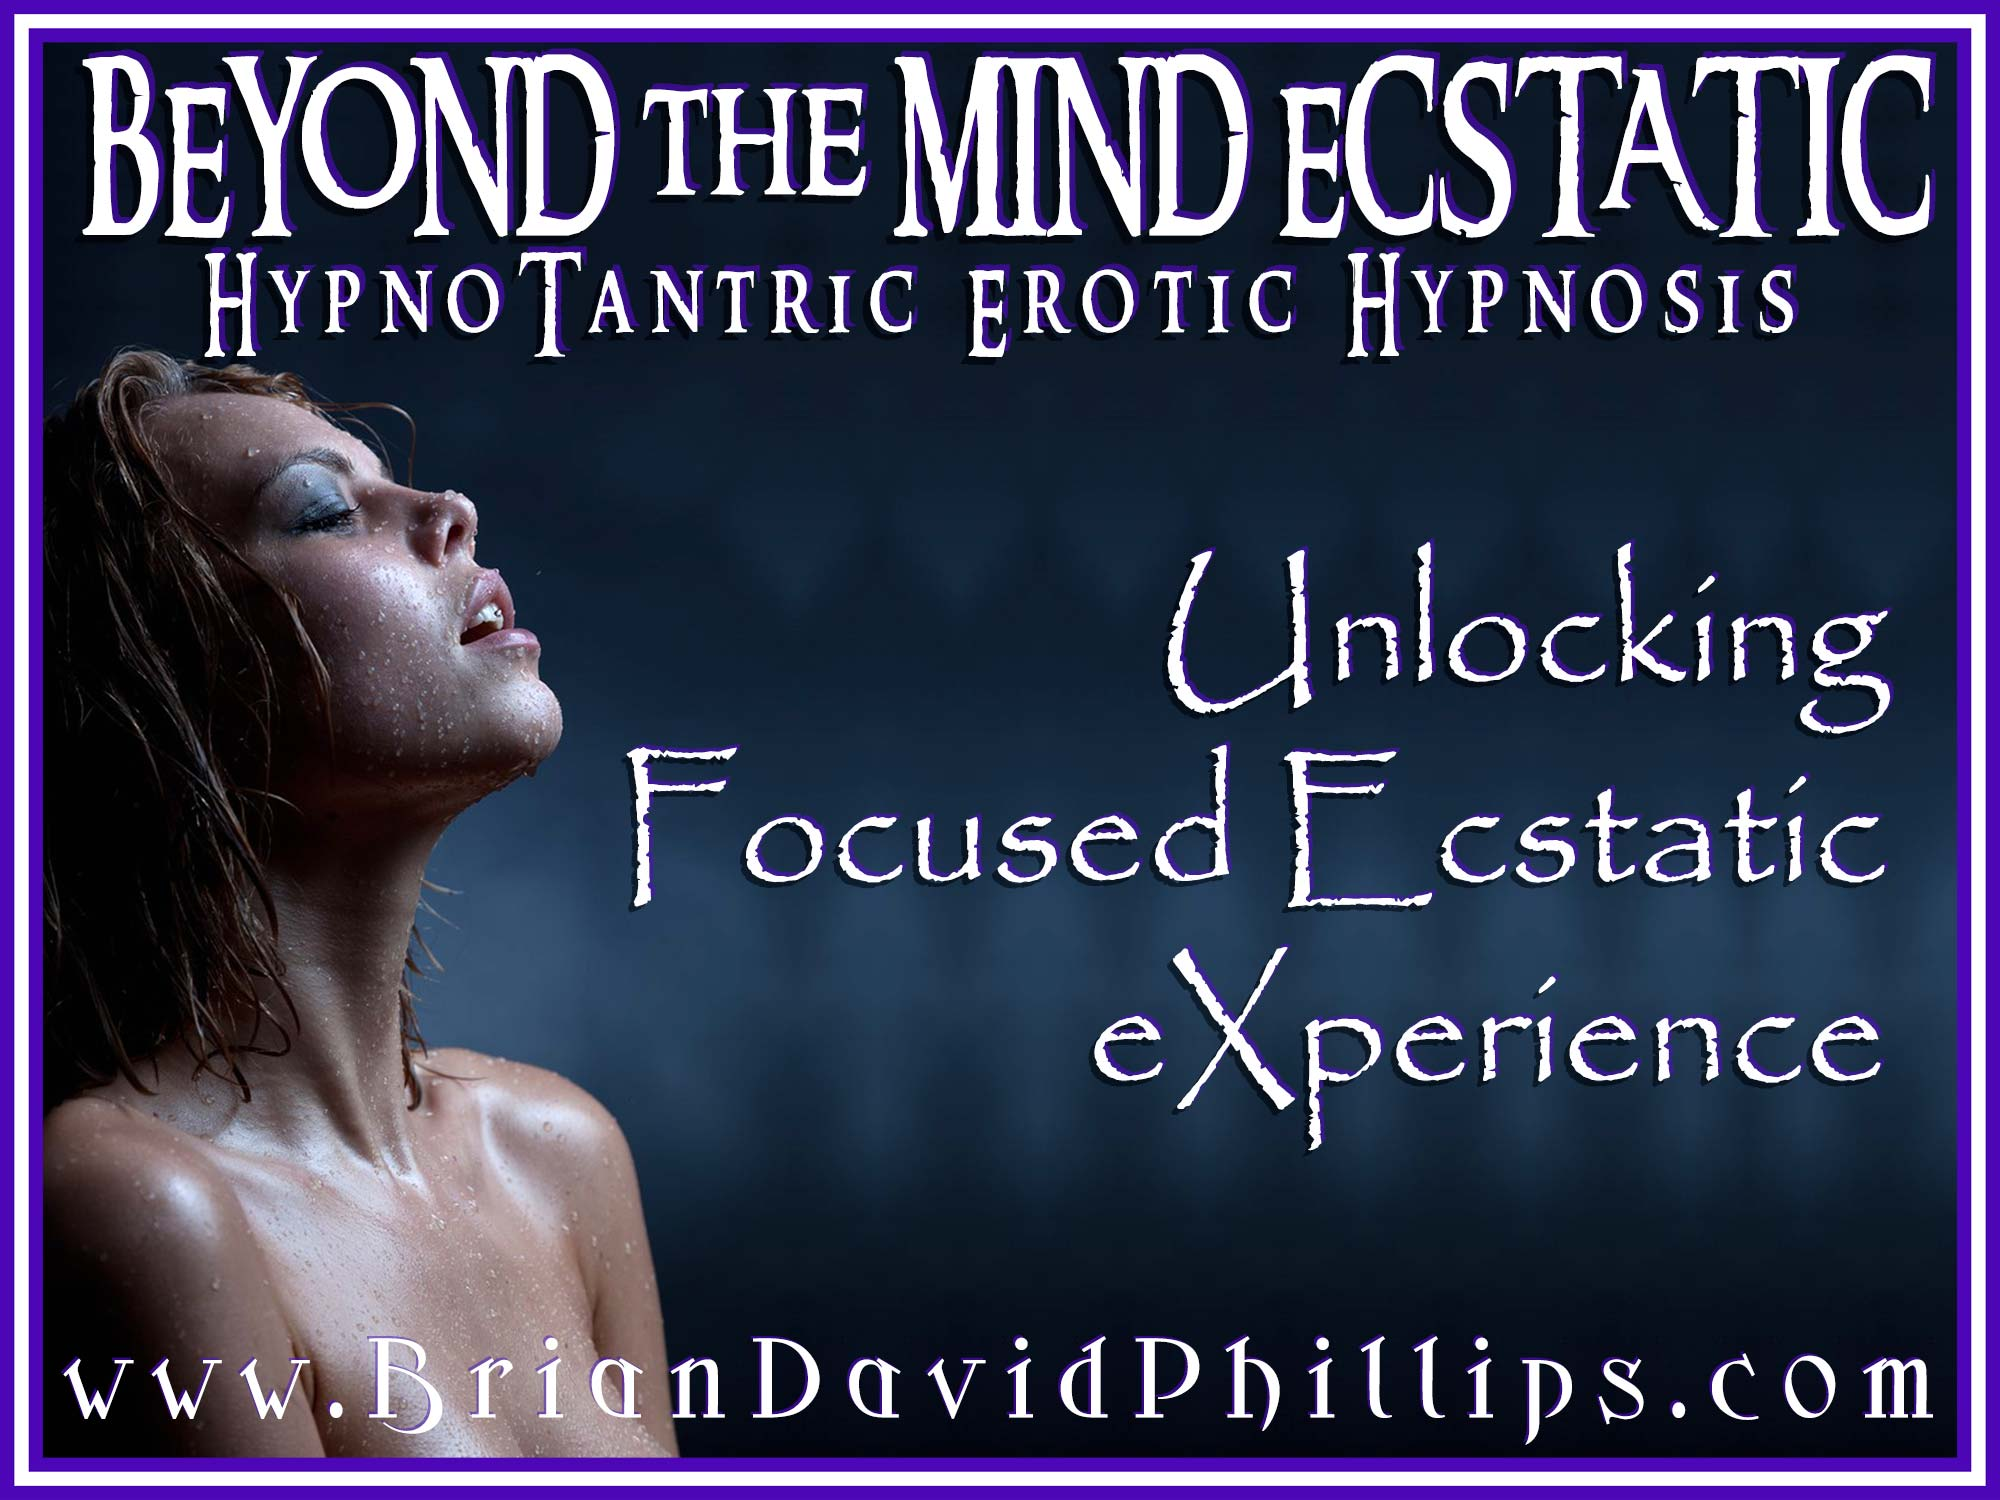 Getting Started in Erotic Hypnosis